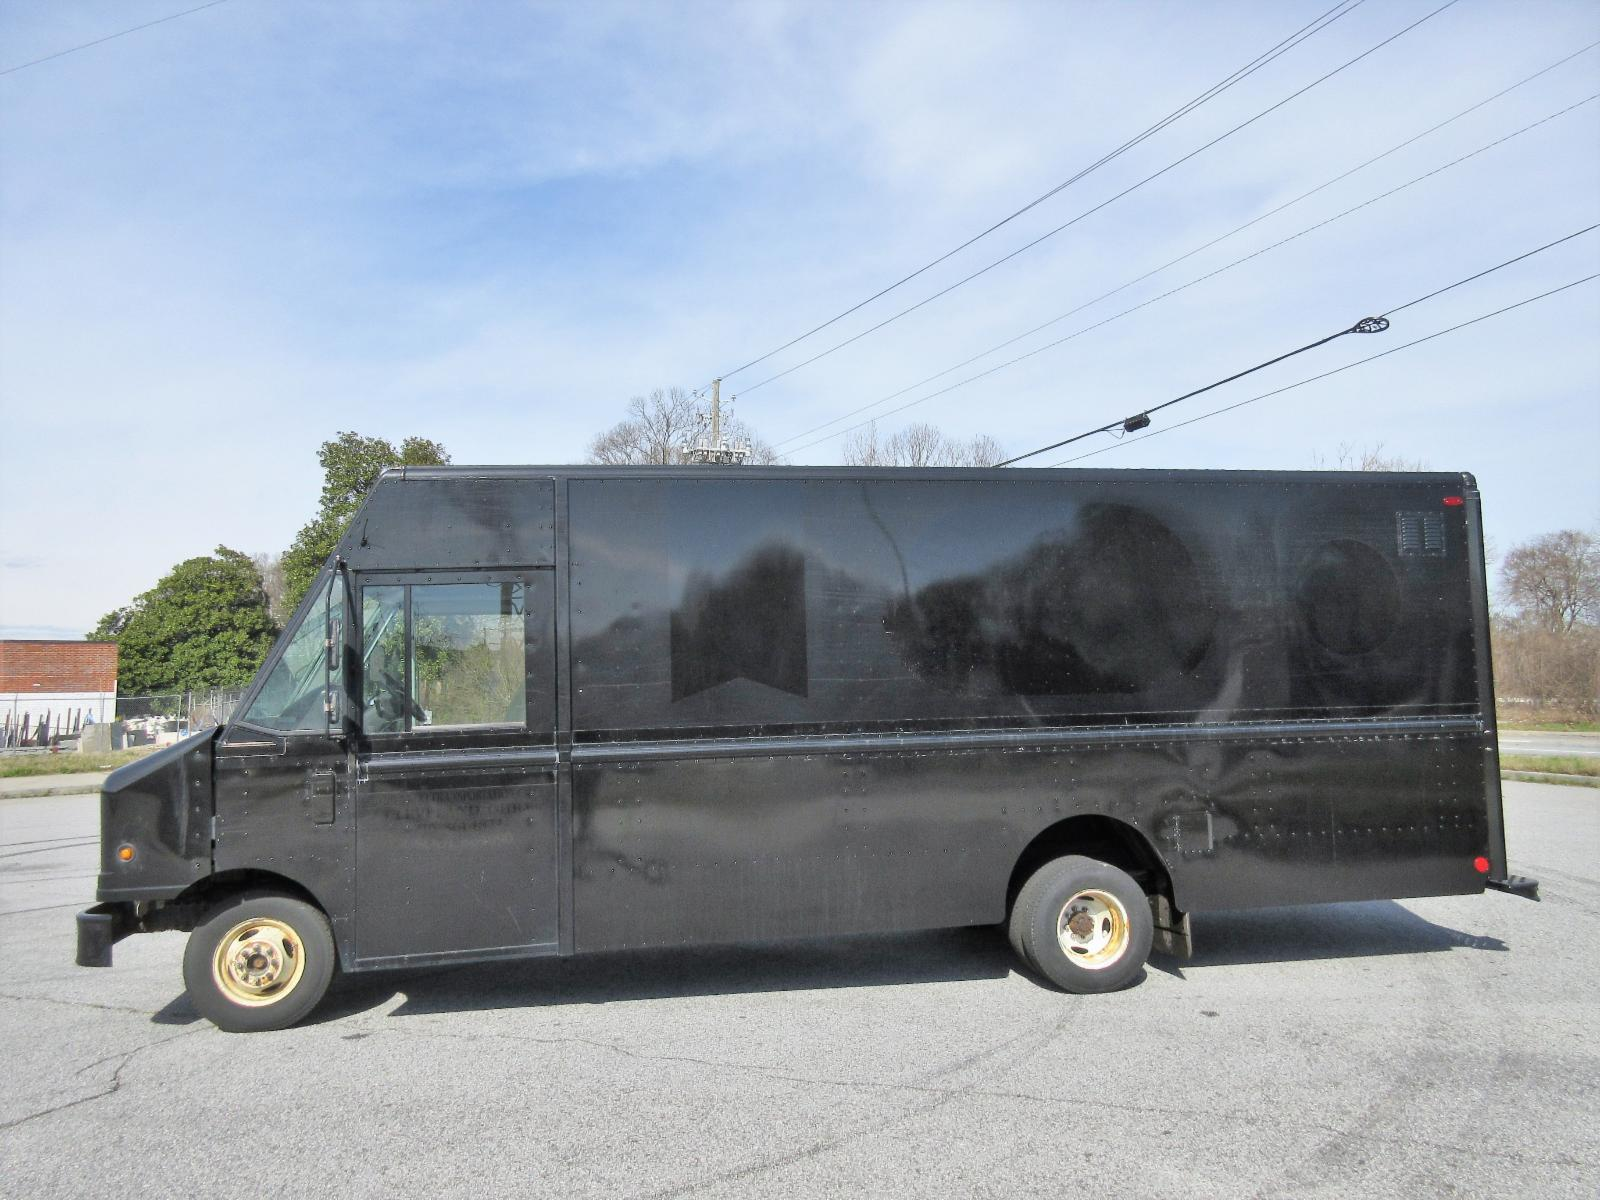 2012 Ford Step van 18ft cargo